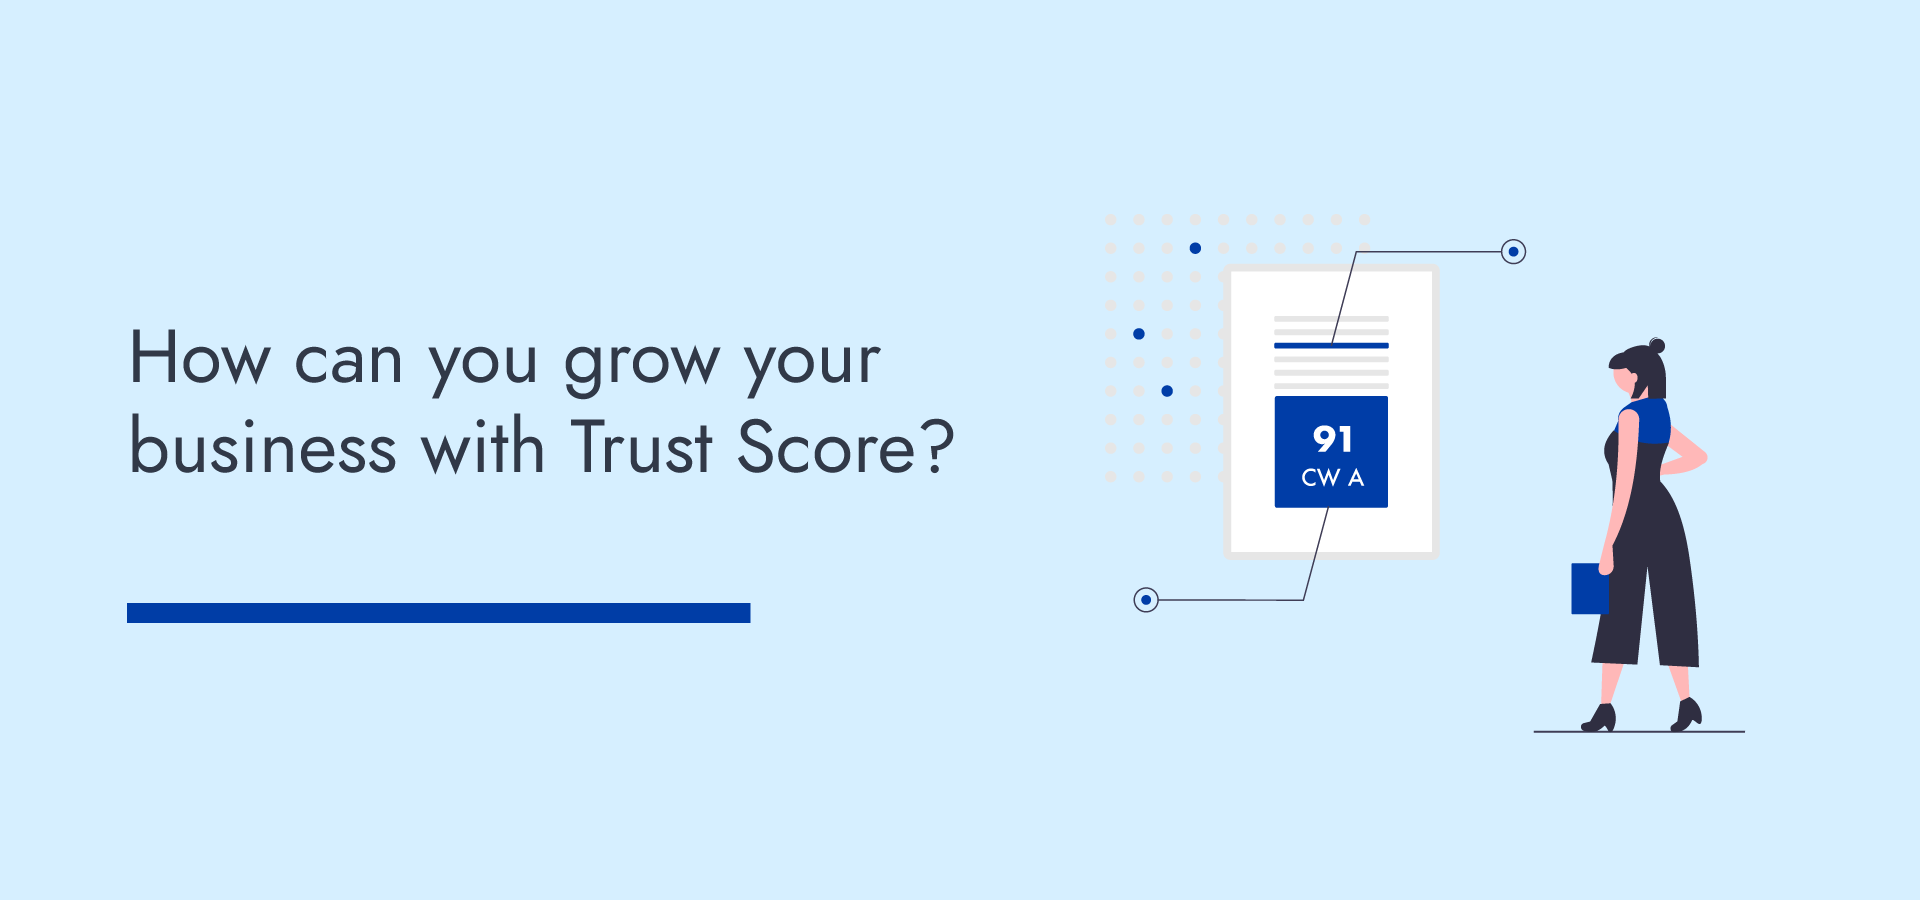 How can you grow your business with Trust Score?